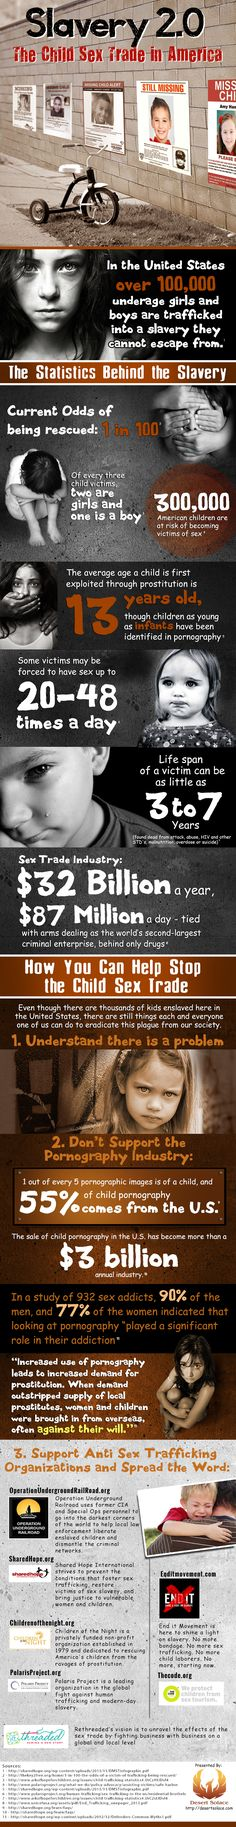 These are the Facts on child sex trafficking. This is a huge problem in our country and it does not get the attention that it so desperately needs. .http://www.desertsolace.com/blog/2013/12/13/slavery-20-the-child-sex-trade-in-america/